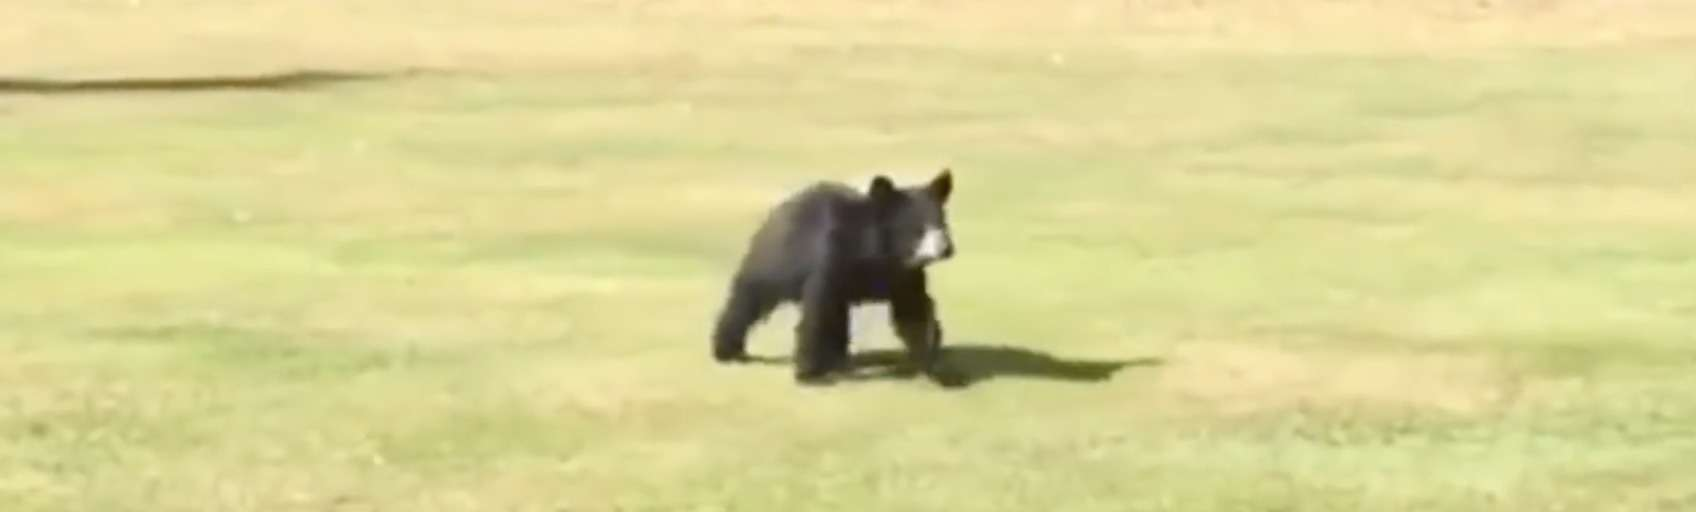 bear hug on a golf course